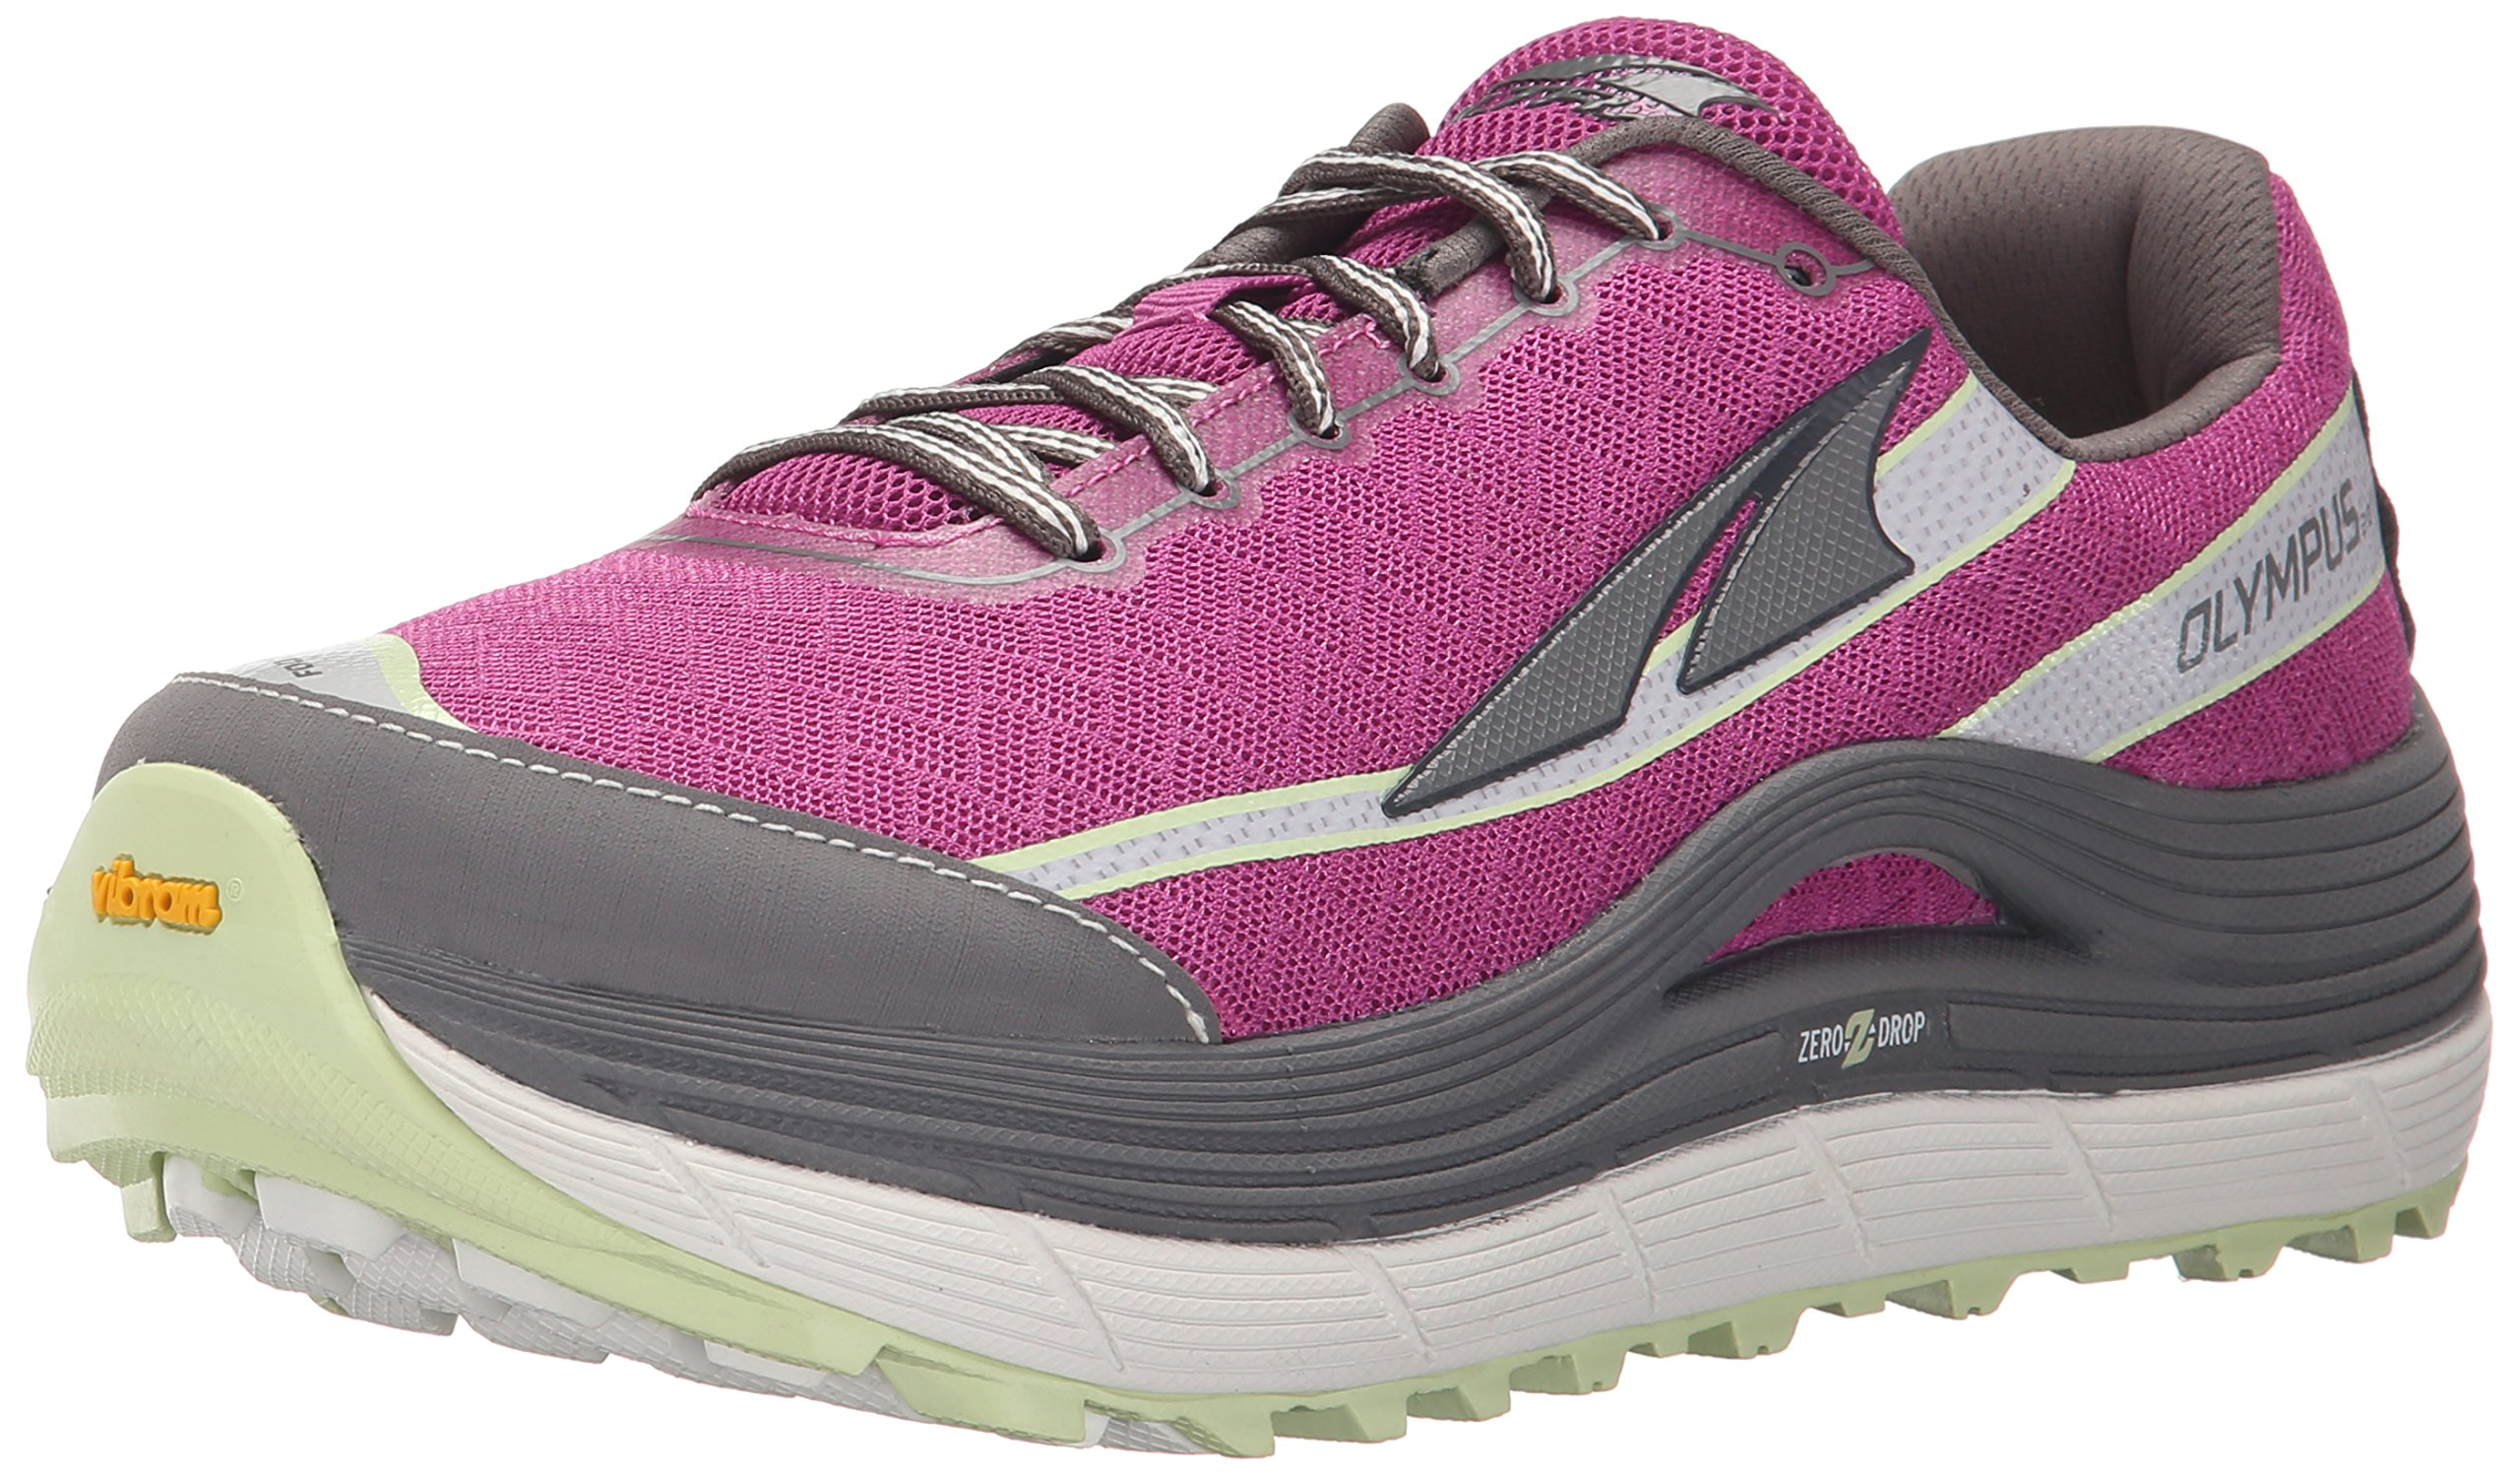 Altra Women's Olympus 2 Trail Running Shoe, Orchid/Gray, 8.5 M US